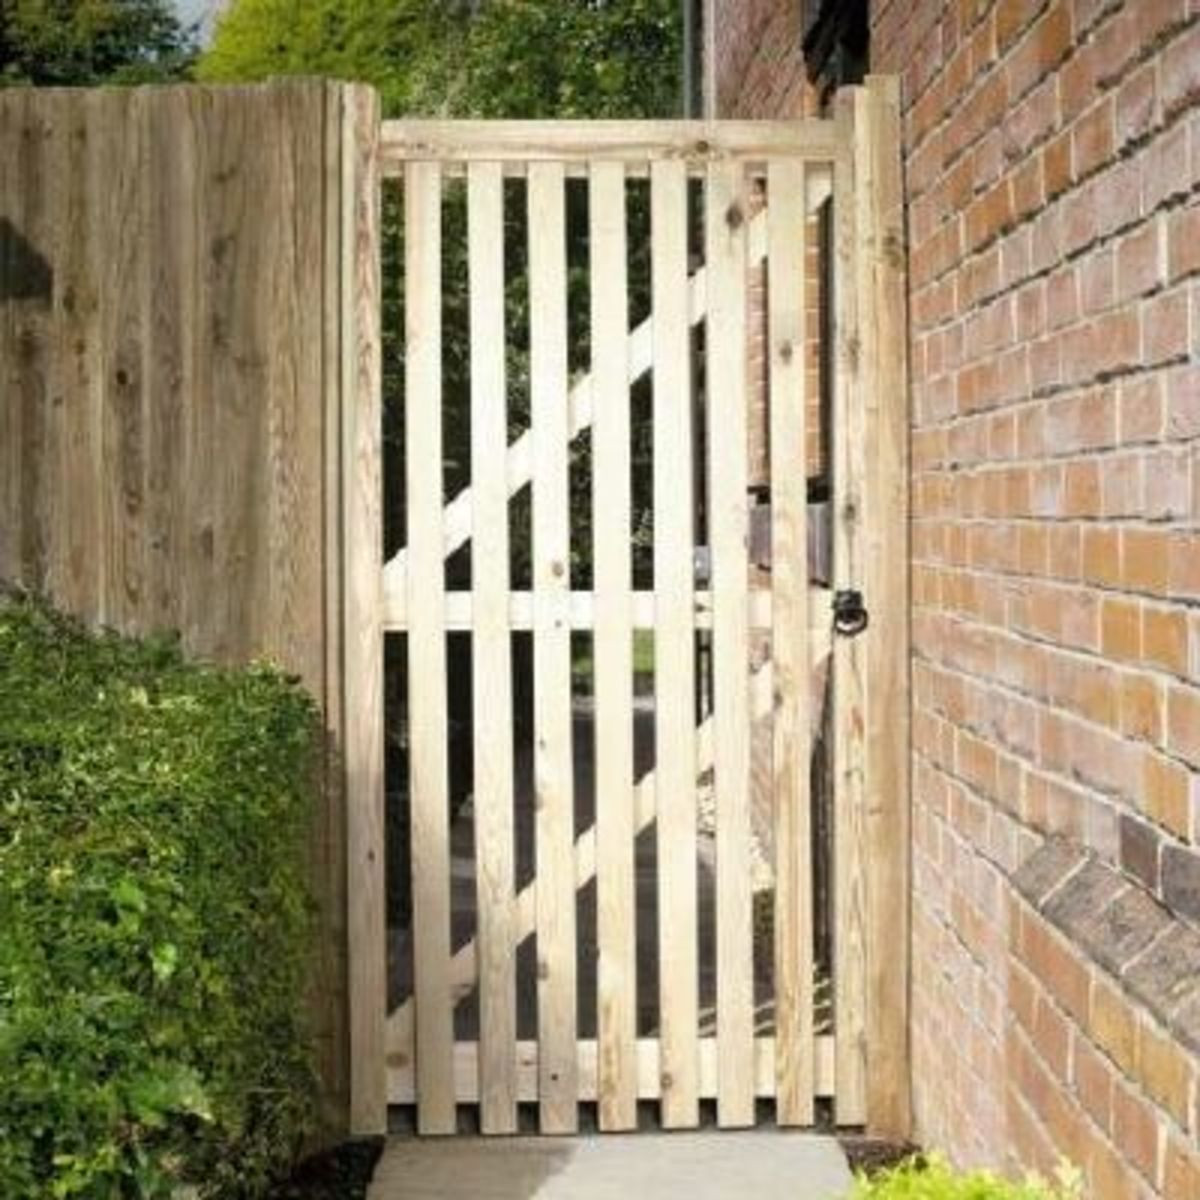 Wooden gates - Tall single side entrance wooden gates - Picket side gate